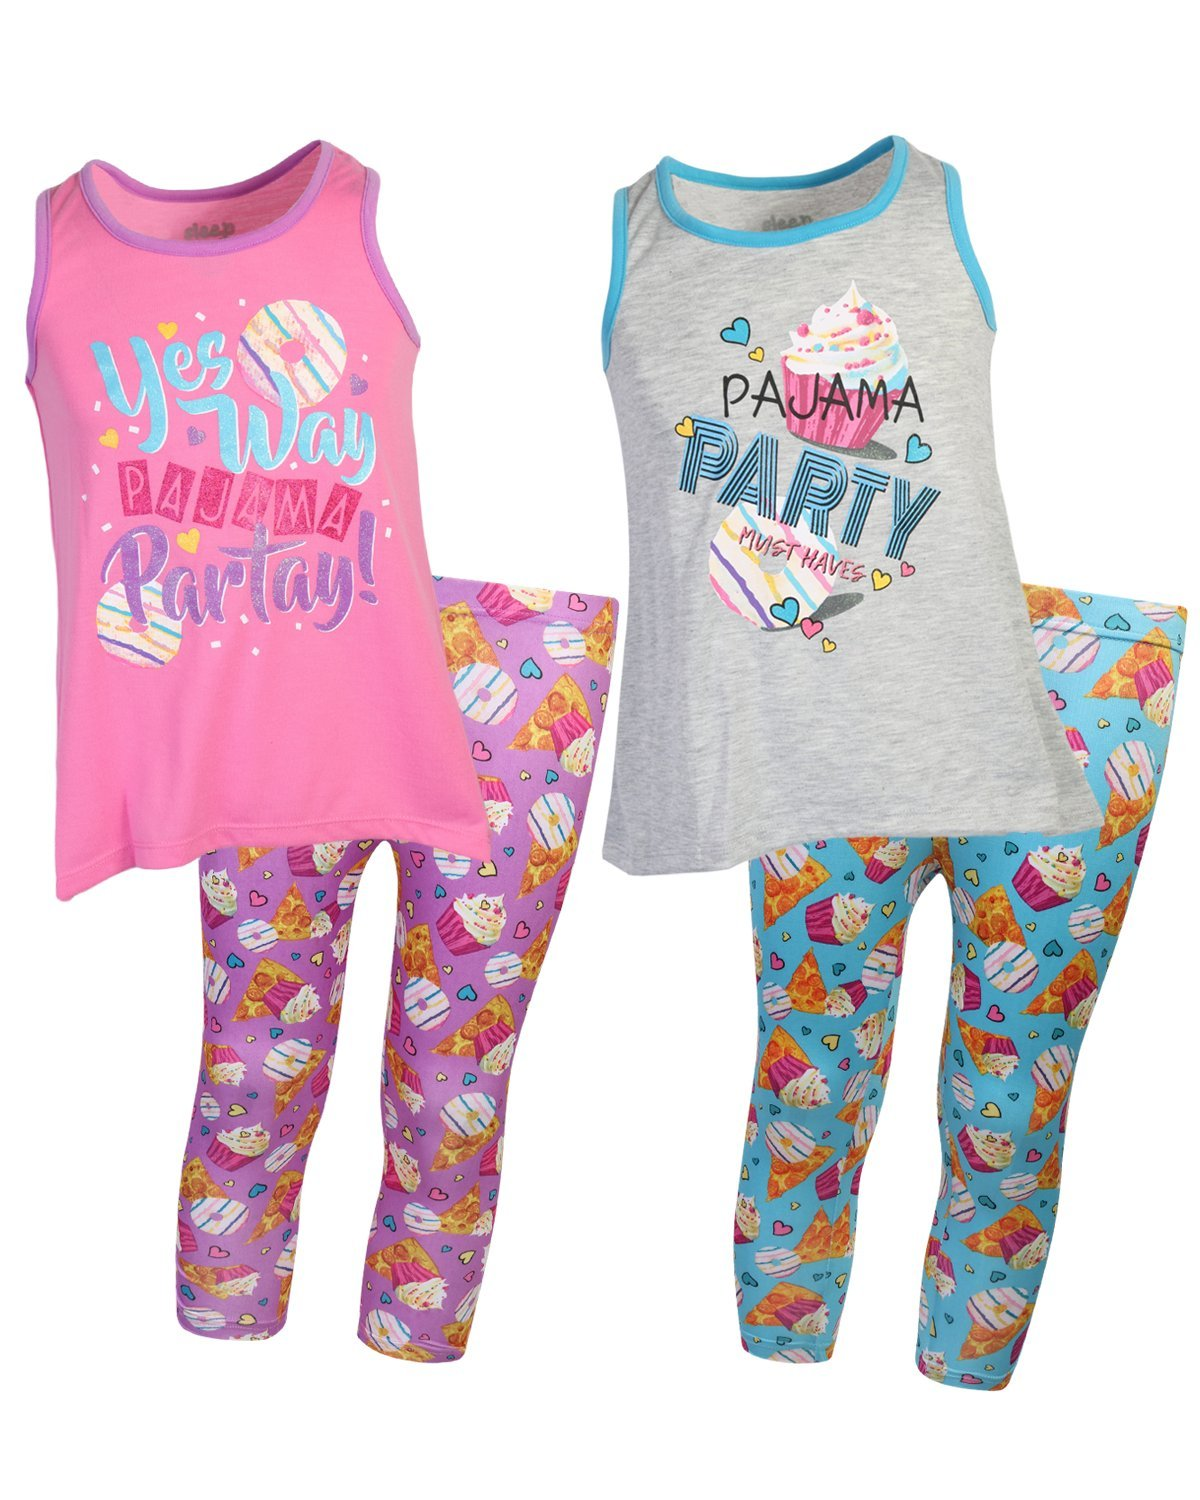 Sleep On It Girls 4-Piece Tank Top and Legging Pajama (2 Full Sets) Grey/Pink, Size 10/12'